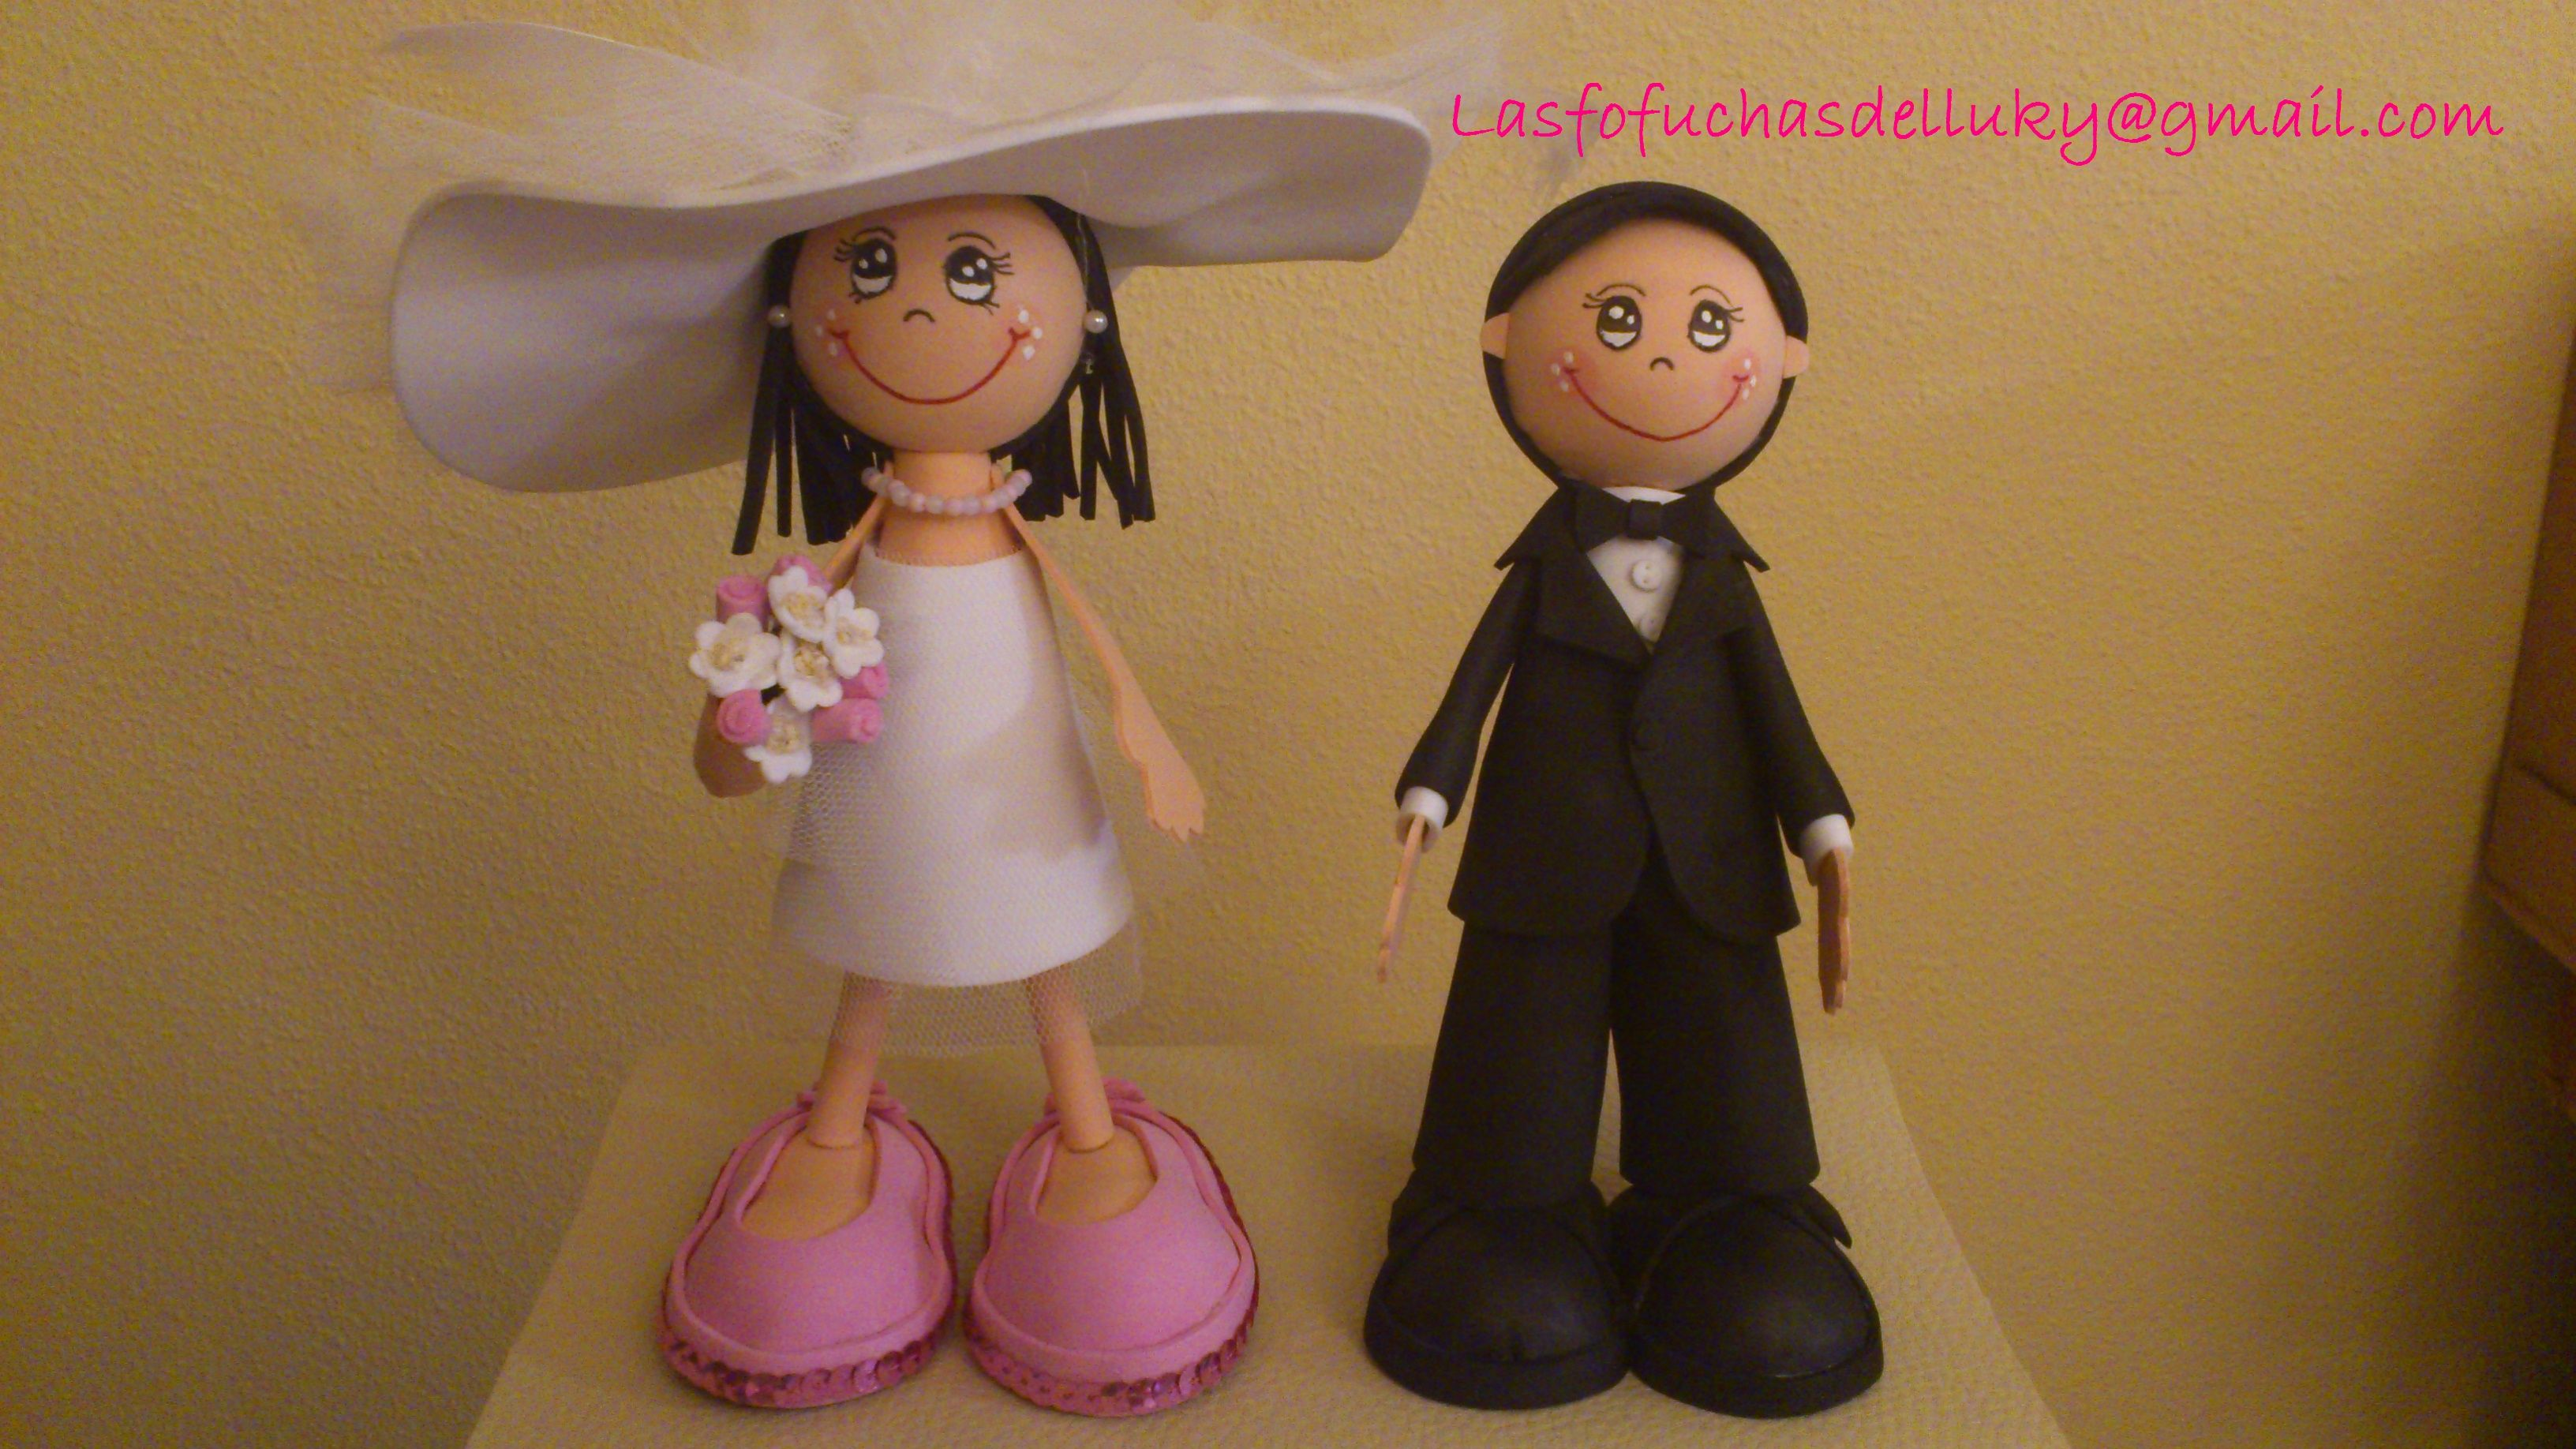 Fofunovios mini personalizados, ella con pamela y el de esmoquin - frente/Personalized mini fofucho dolls just married, she is wearing a big broad-brimmed hat and he is dressing a tuxedo - front